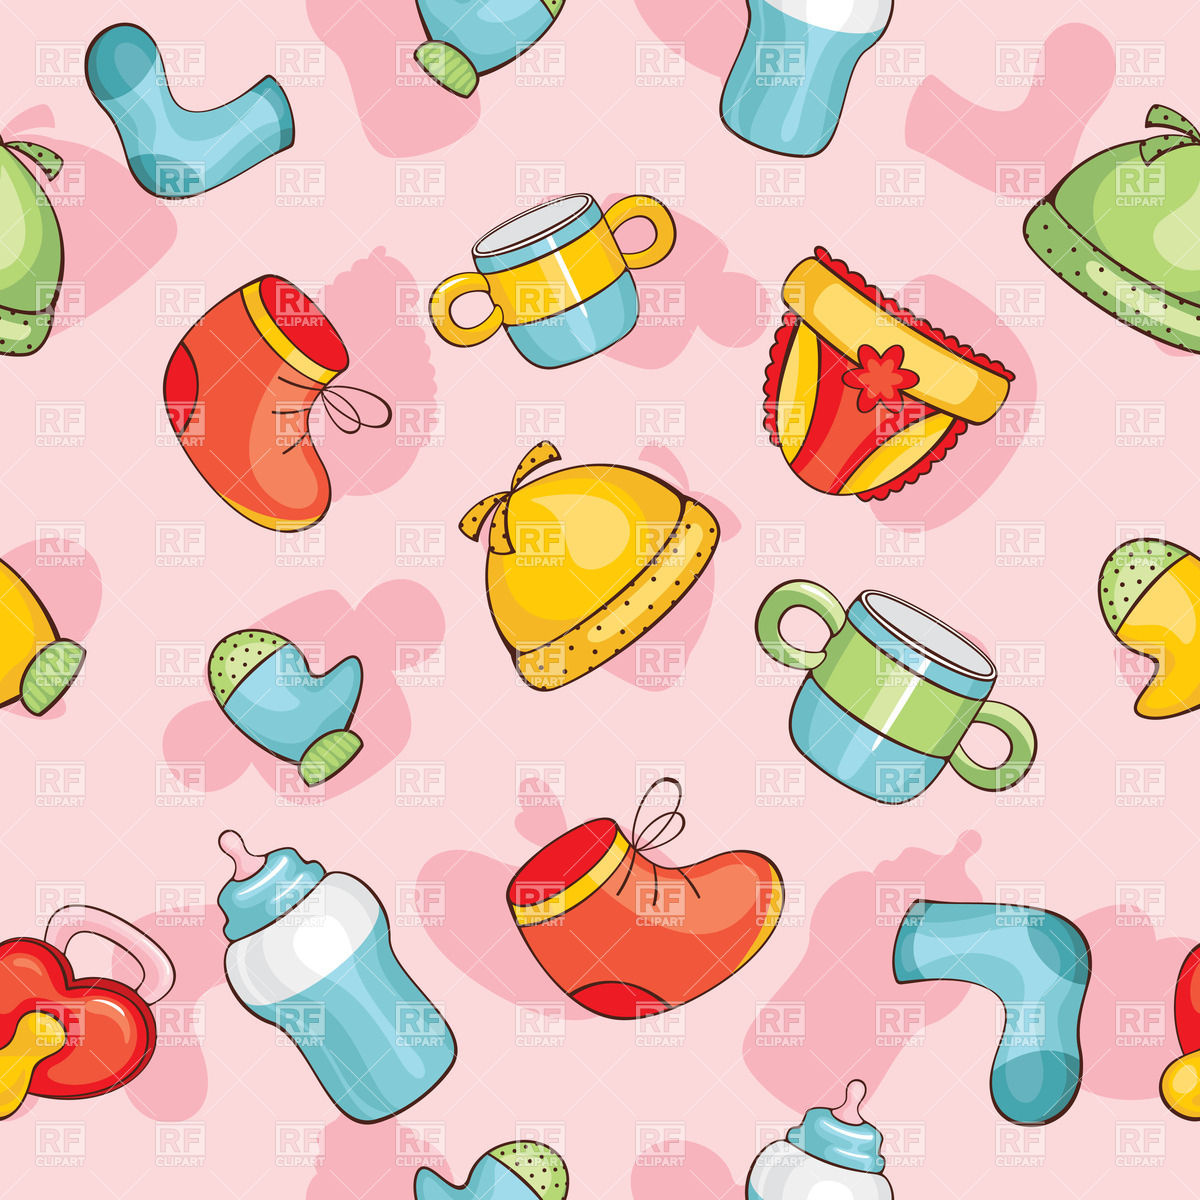 Cute pink seamless baby clothes background Vector Image #37719.